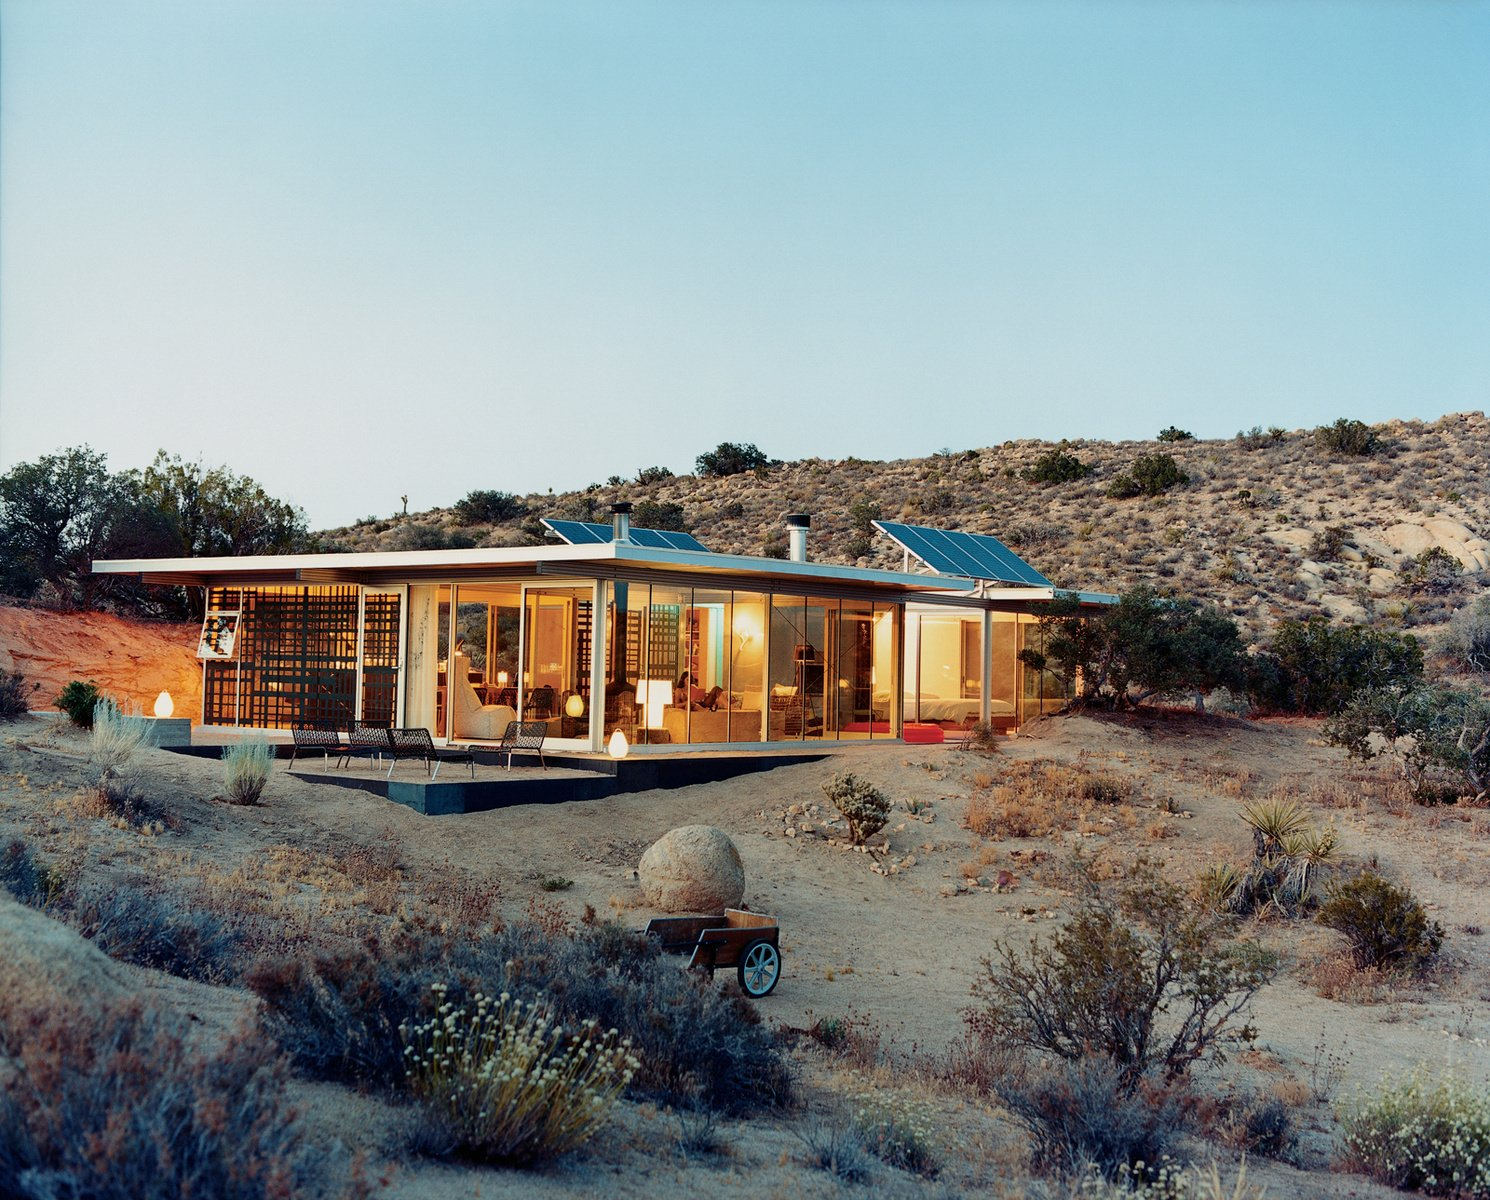 The iT House offers cross-ventilation through its wide, expansive doors and windows, which naturally help cool down the home's interior temperature. Photo by: Gregg Segal  Superb Single-Story Homes by Luke Hopping from Prefab Desert Homes